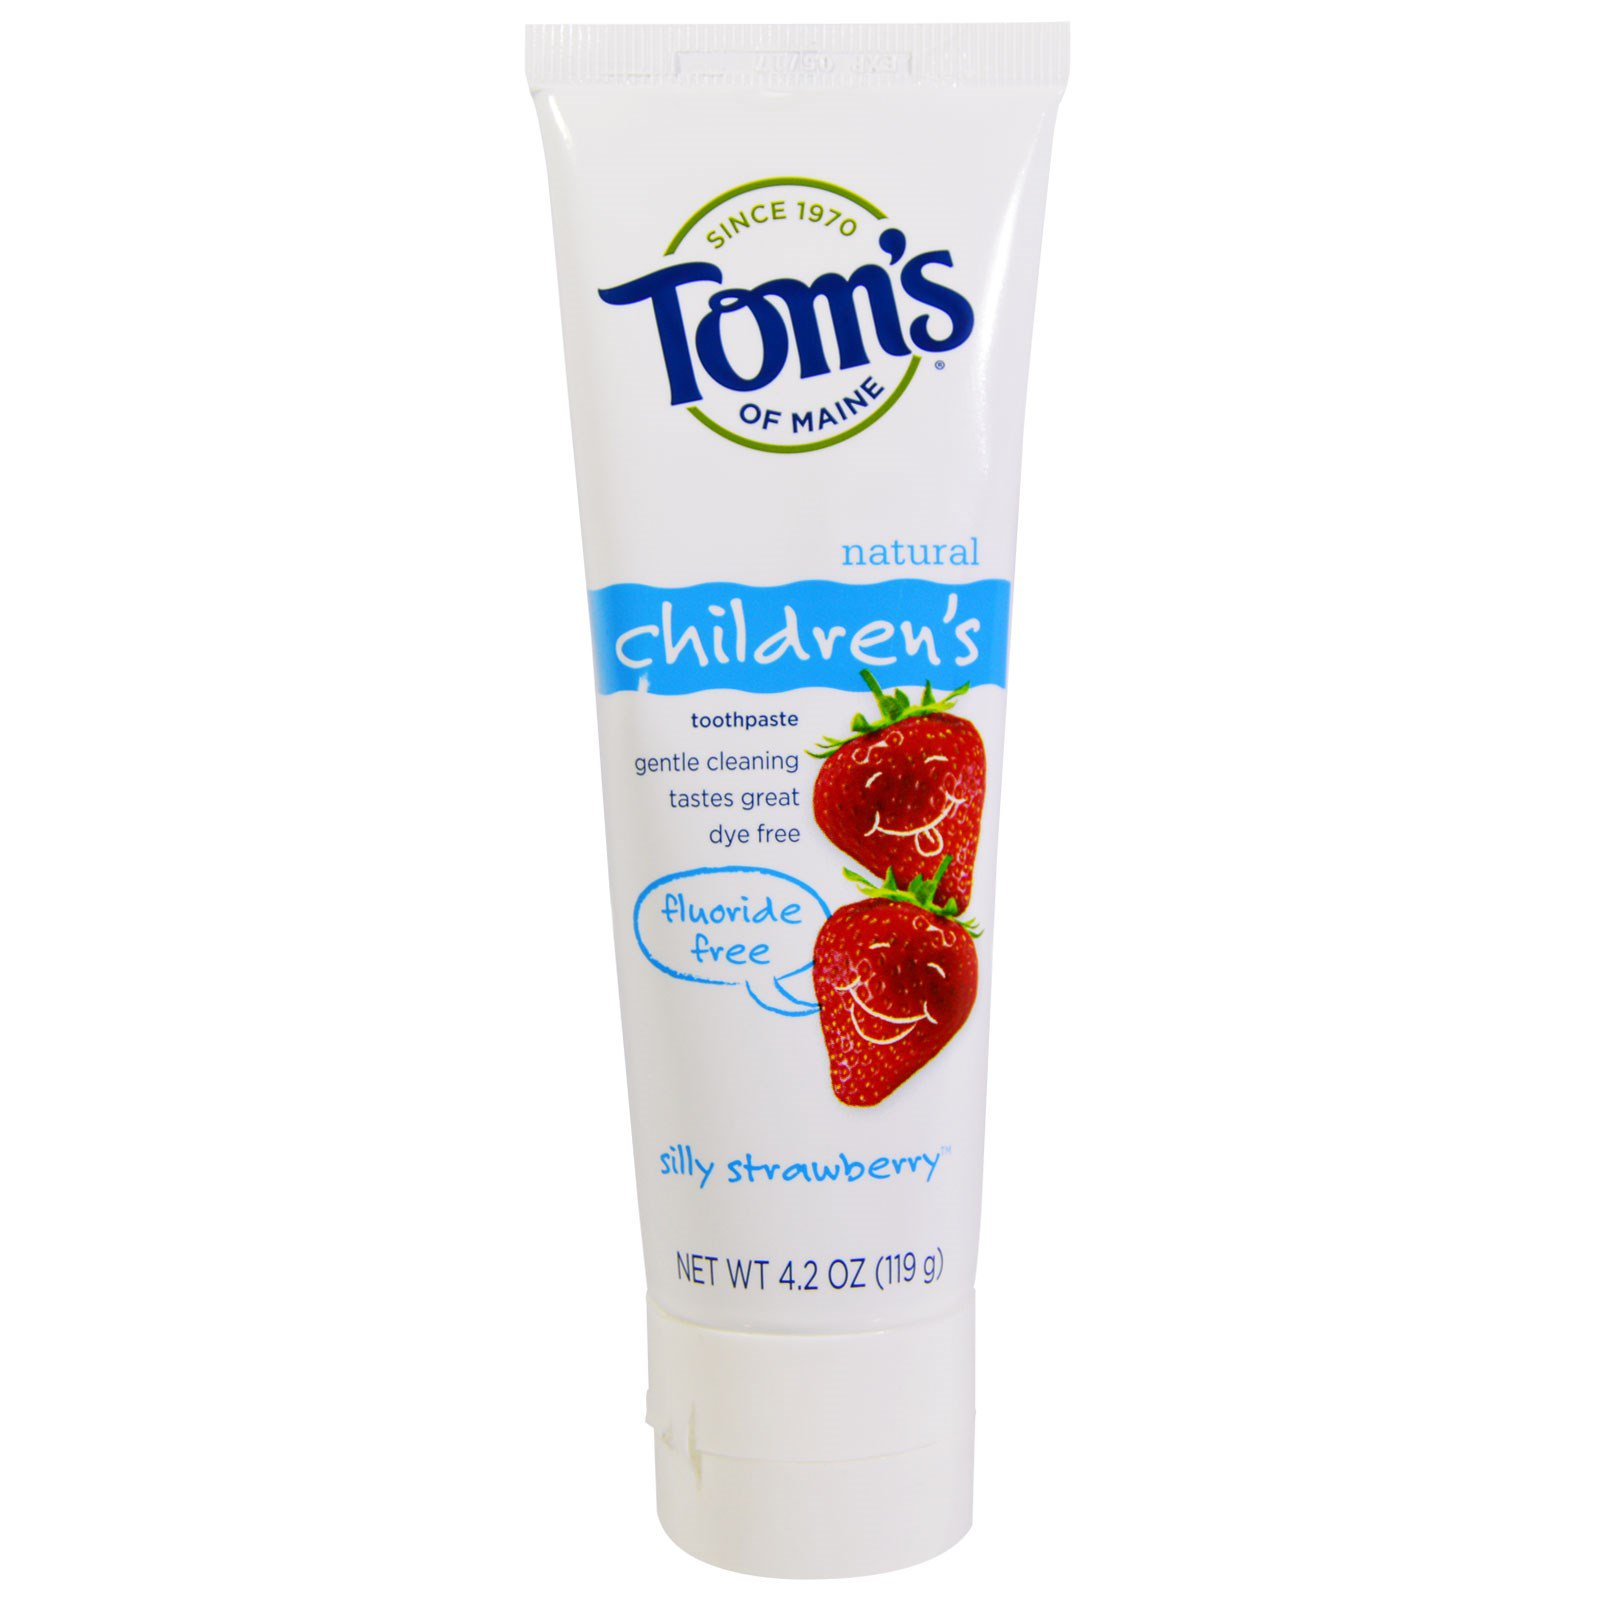 Tom S Of Maine Children S Natural Toothpaste Fluoride Free Silly Strawberry